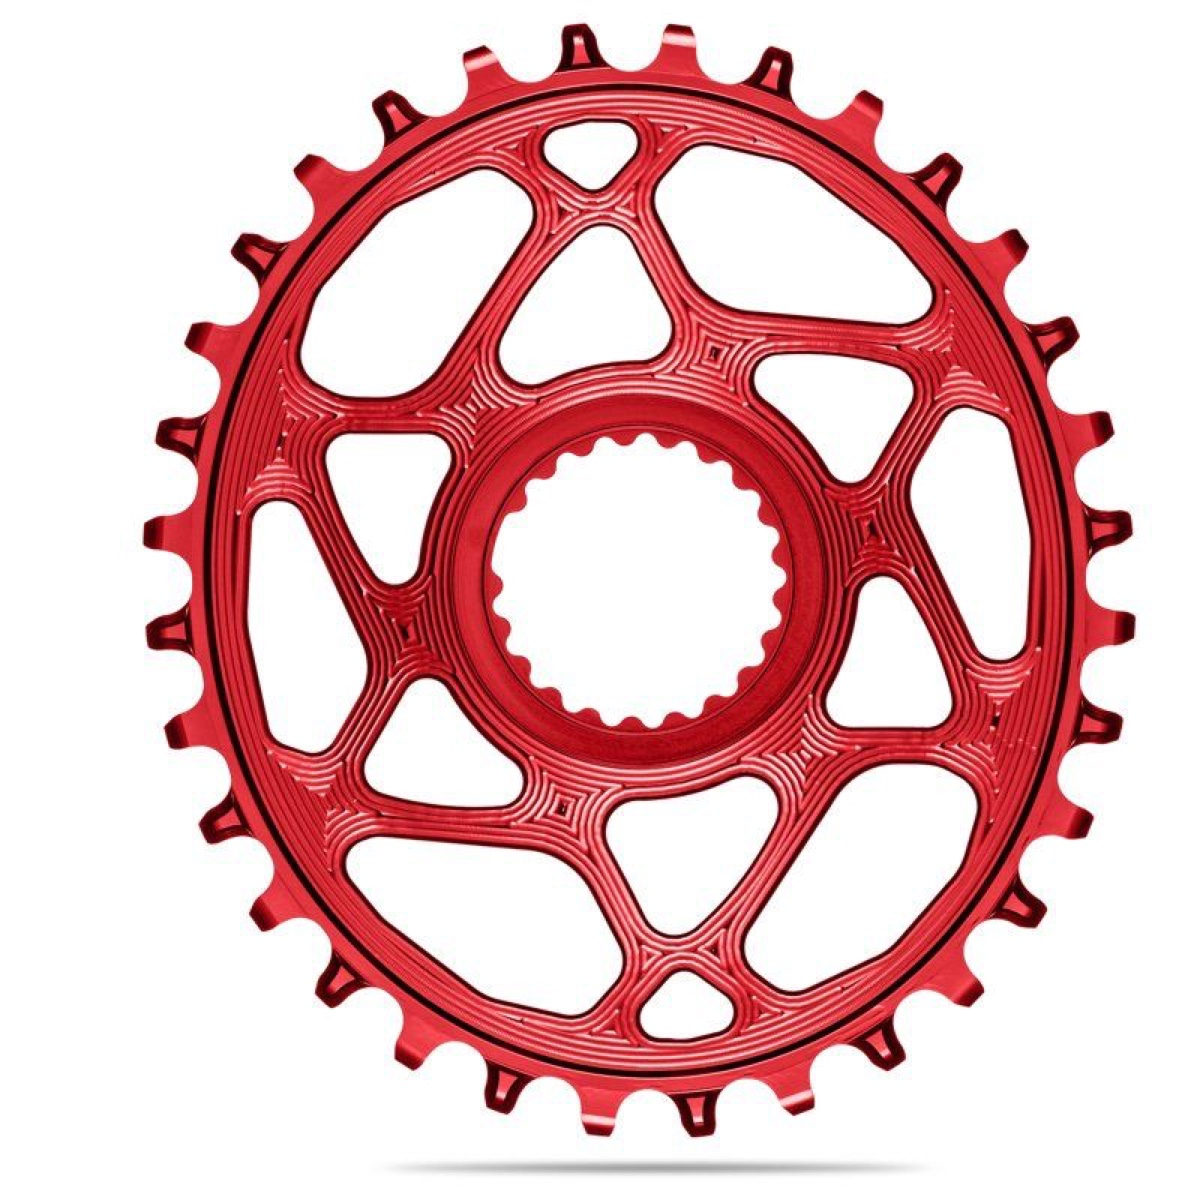 AbsoluteBlack Klinge NW Shimano 12 speed OVAL - Rød - SHDMOVxxRD | chainrings_component